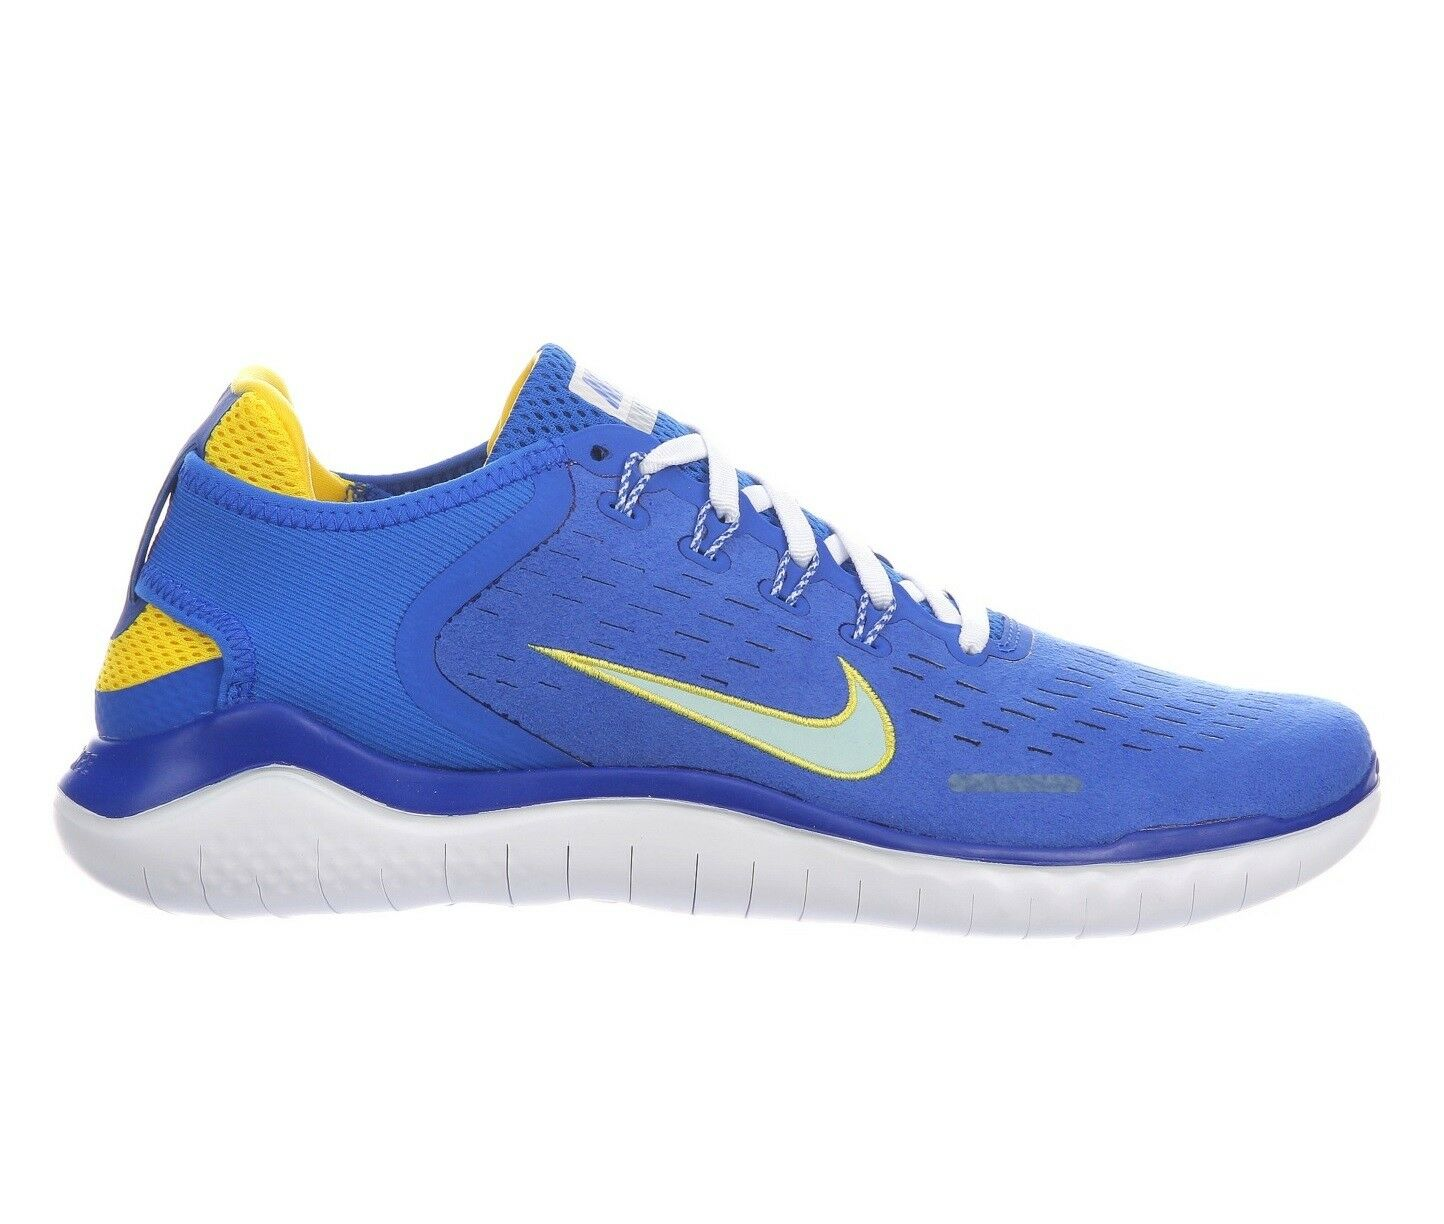 Nike Free RN 2018 DNA Mens AH7870-400 Blue Cobalt Citron Running Shoes Size 8.5